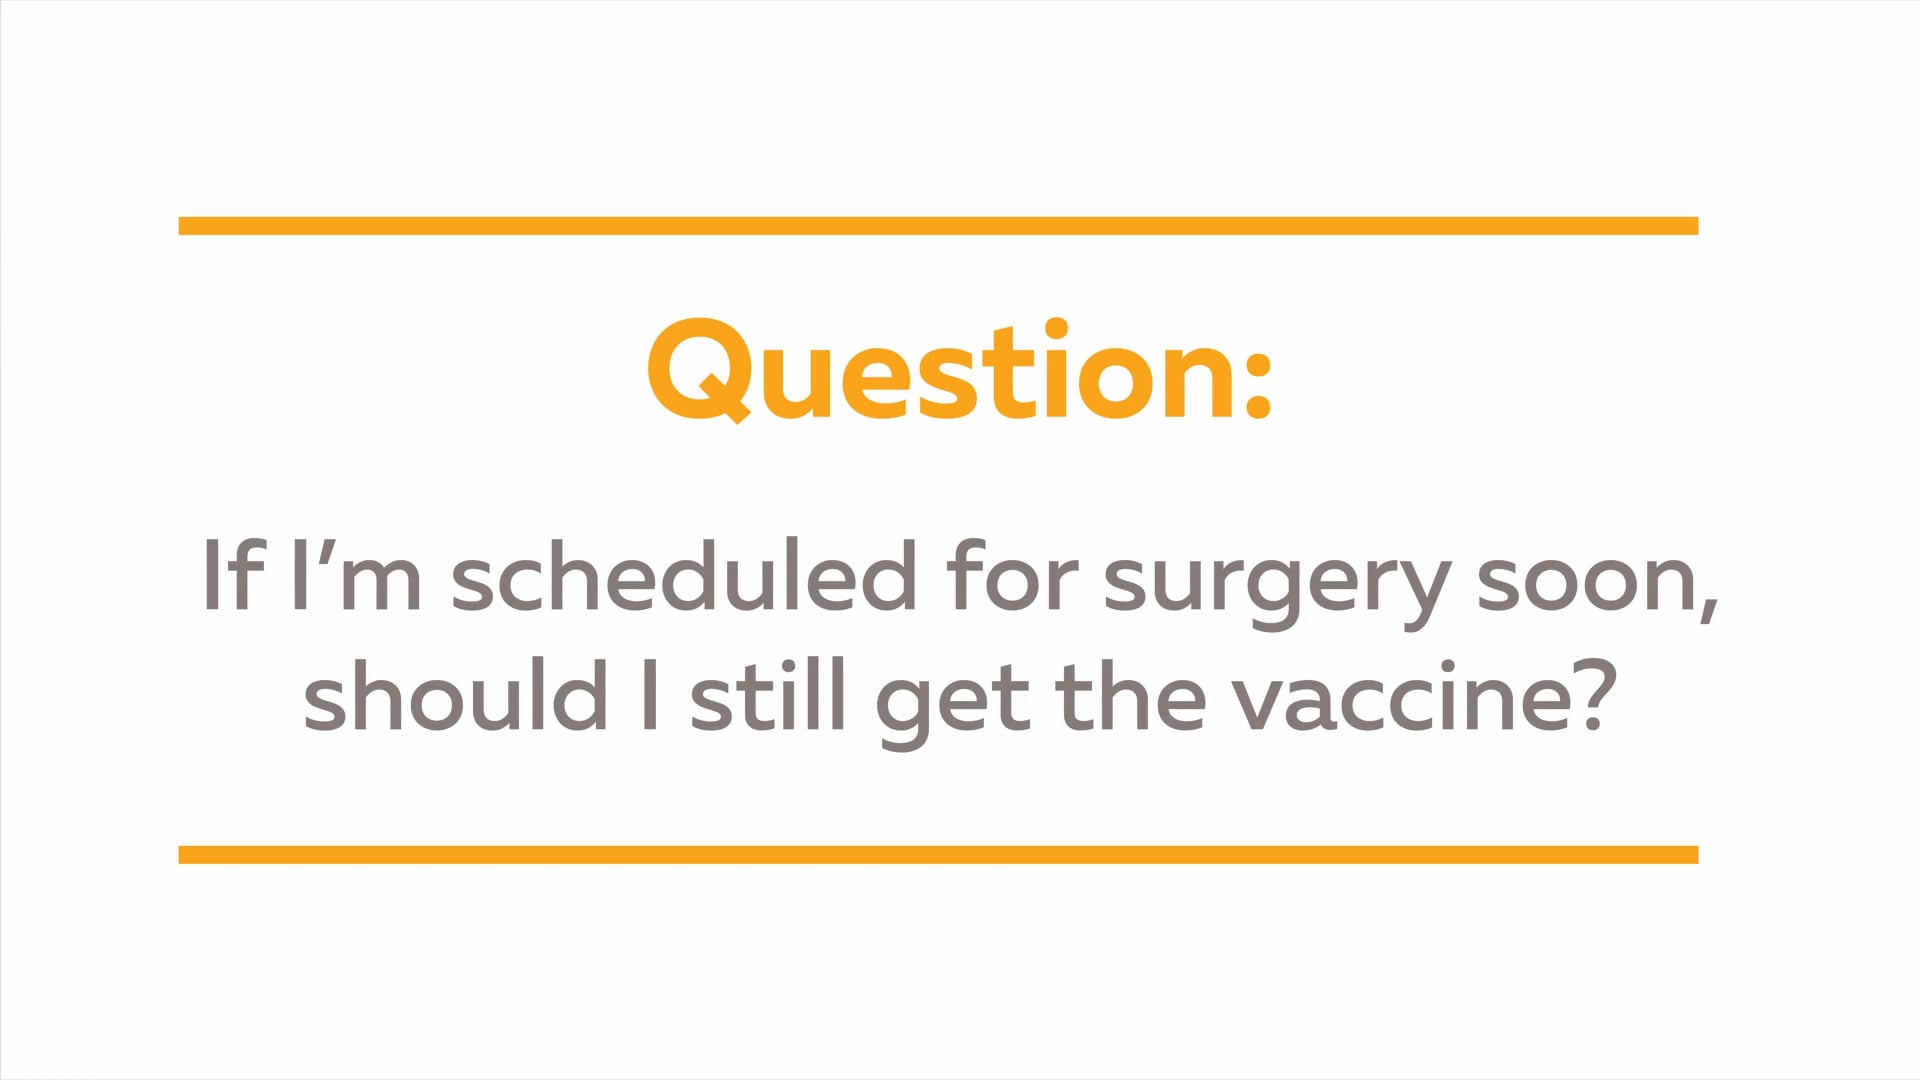 Vaccine Q&A: If I'm scheduled for surgery soon, should I still get the vaccine?